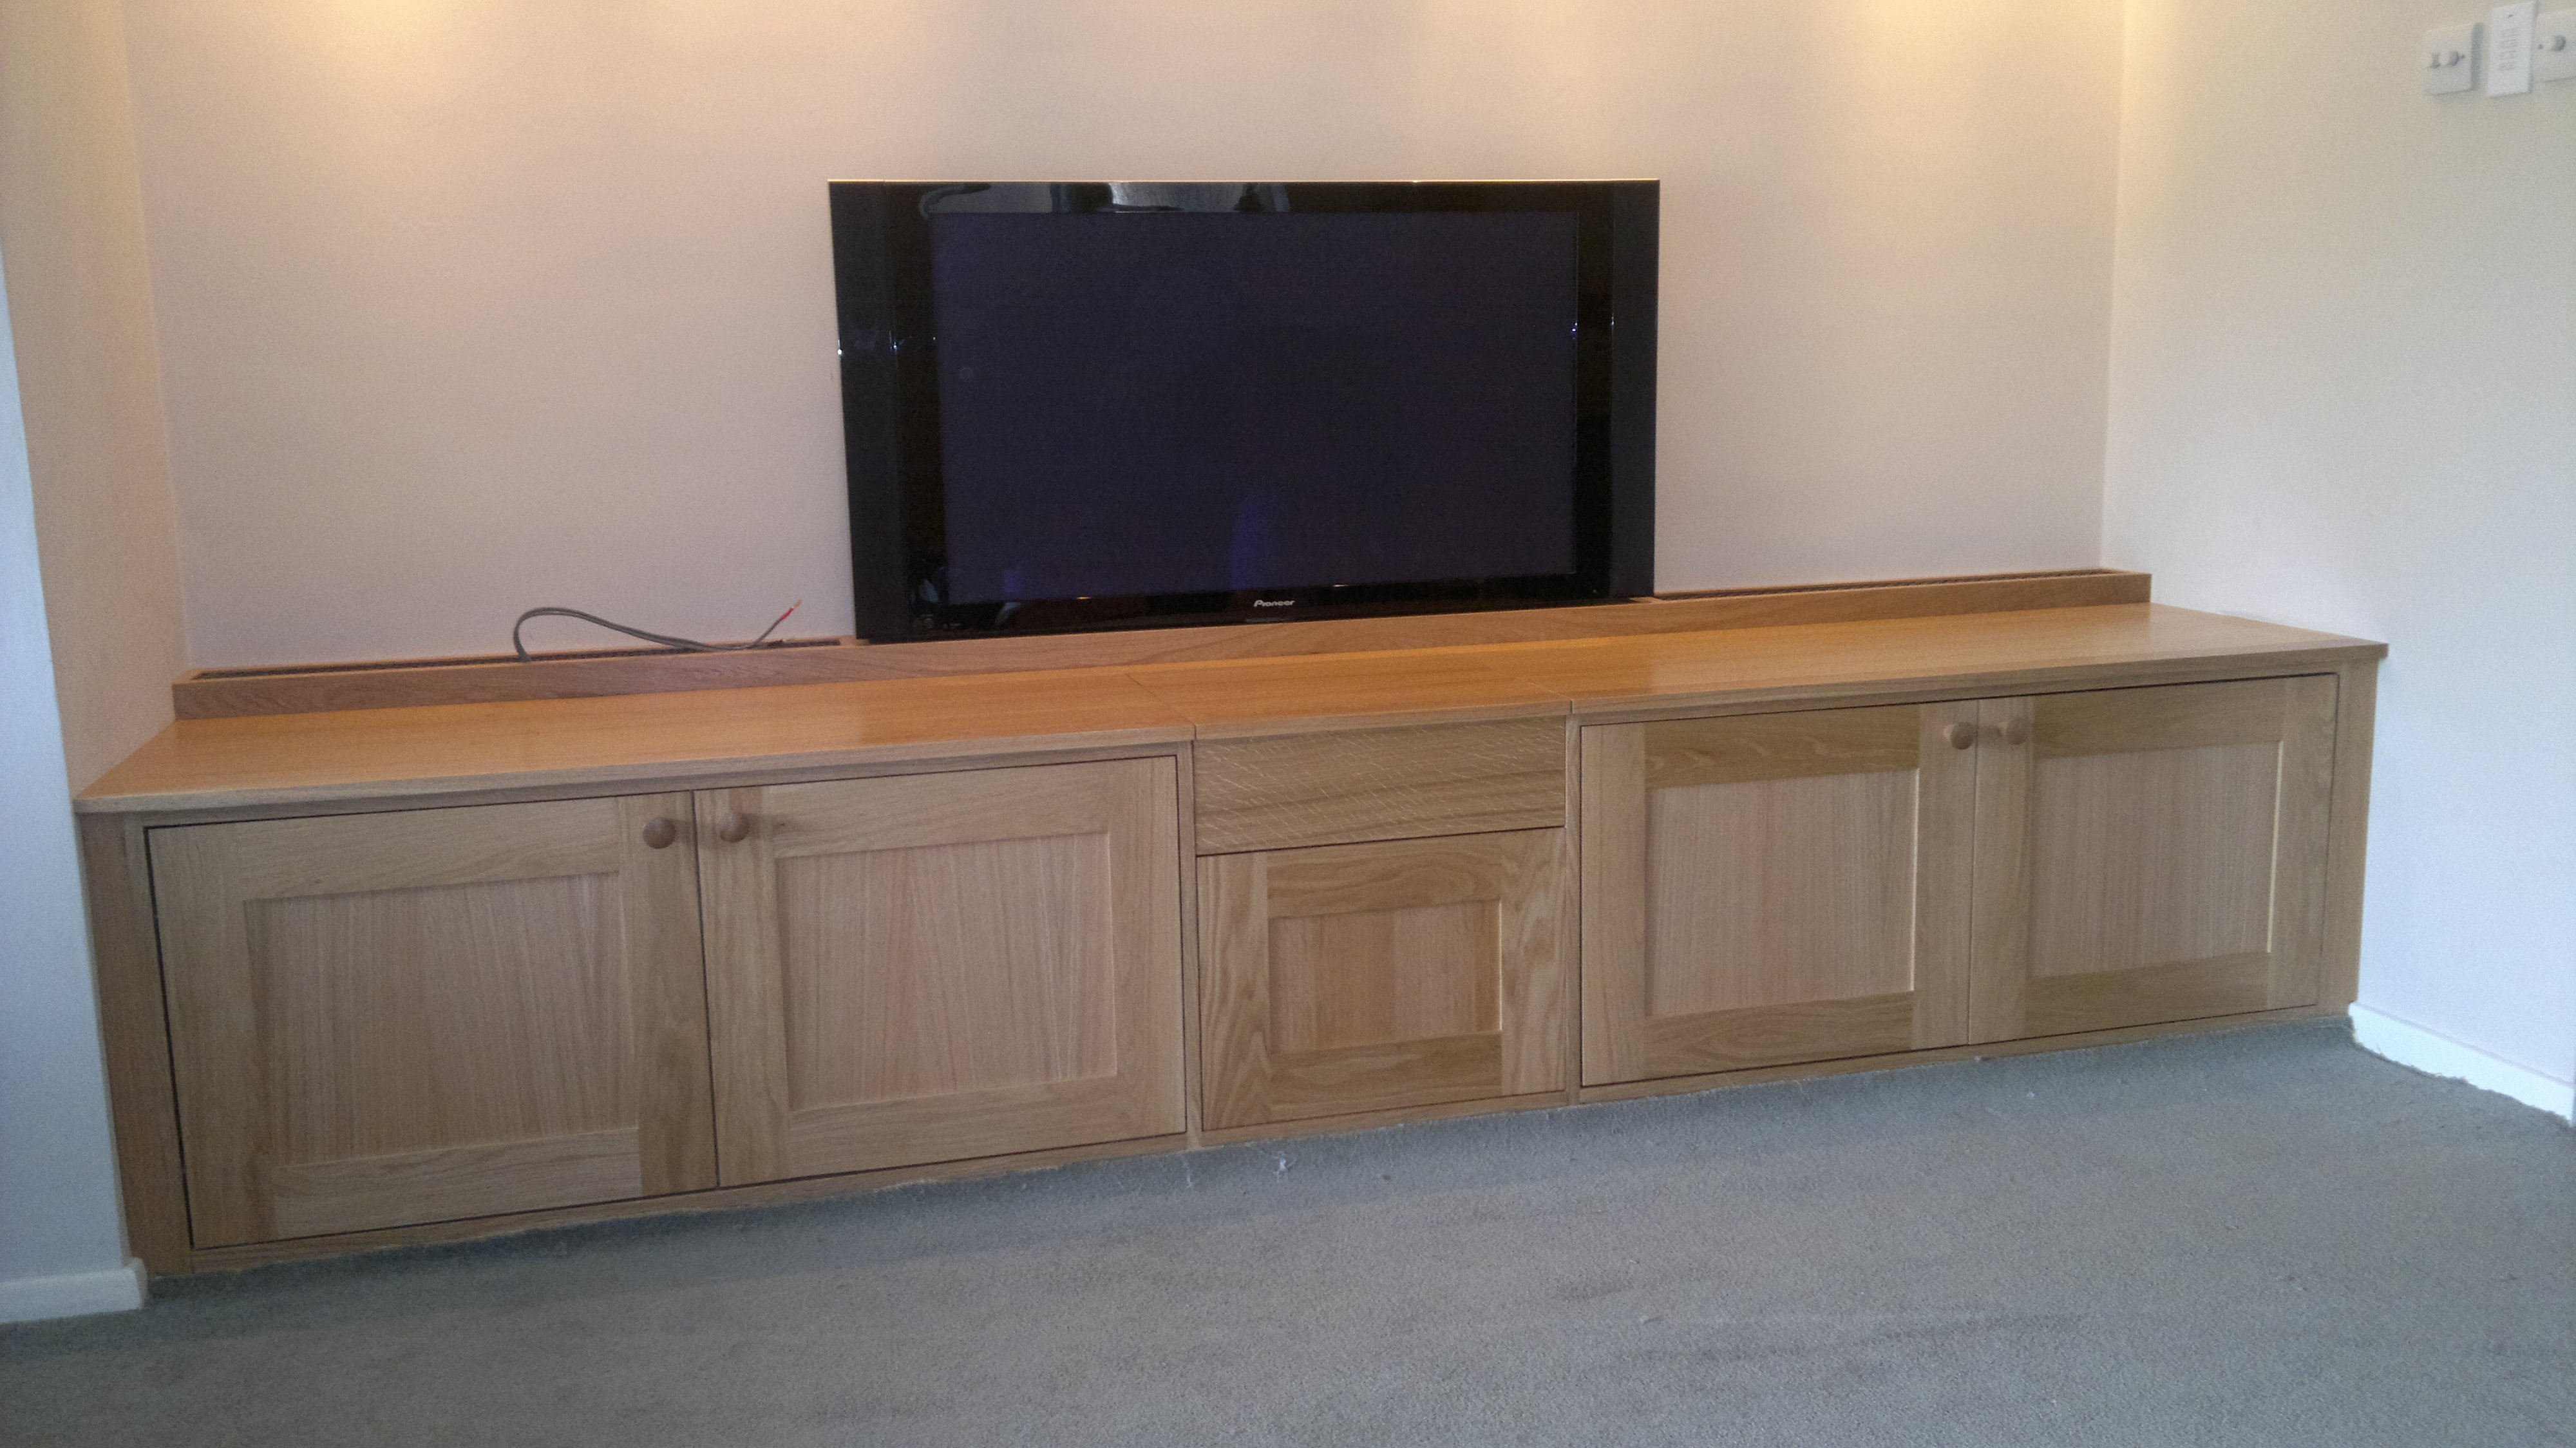 Low Level Tv Cabinet Tdk Joinery Bespoke Tvlcd Standstv Lifts With Regard To Bespoke Tv Cabinet (View 14 of 15)